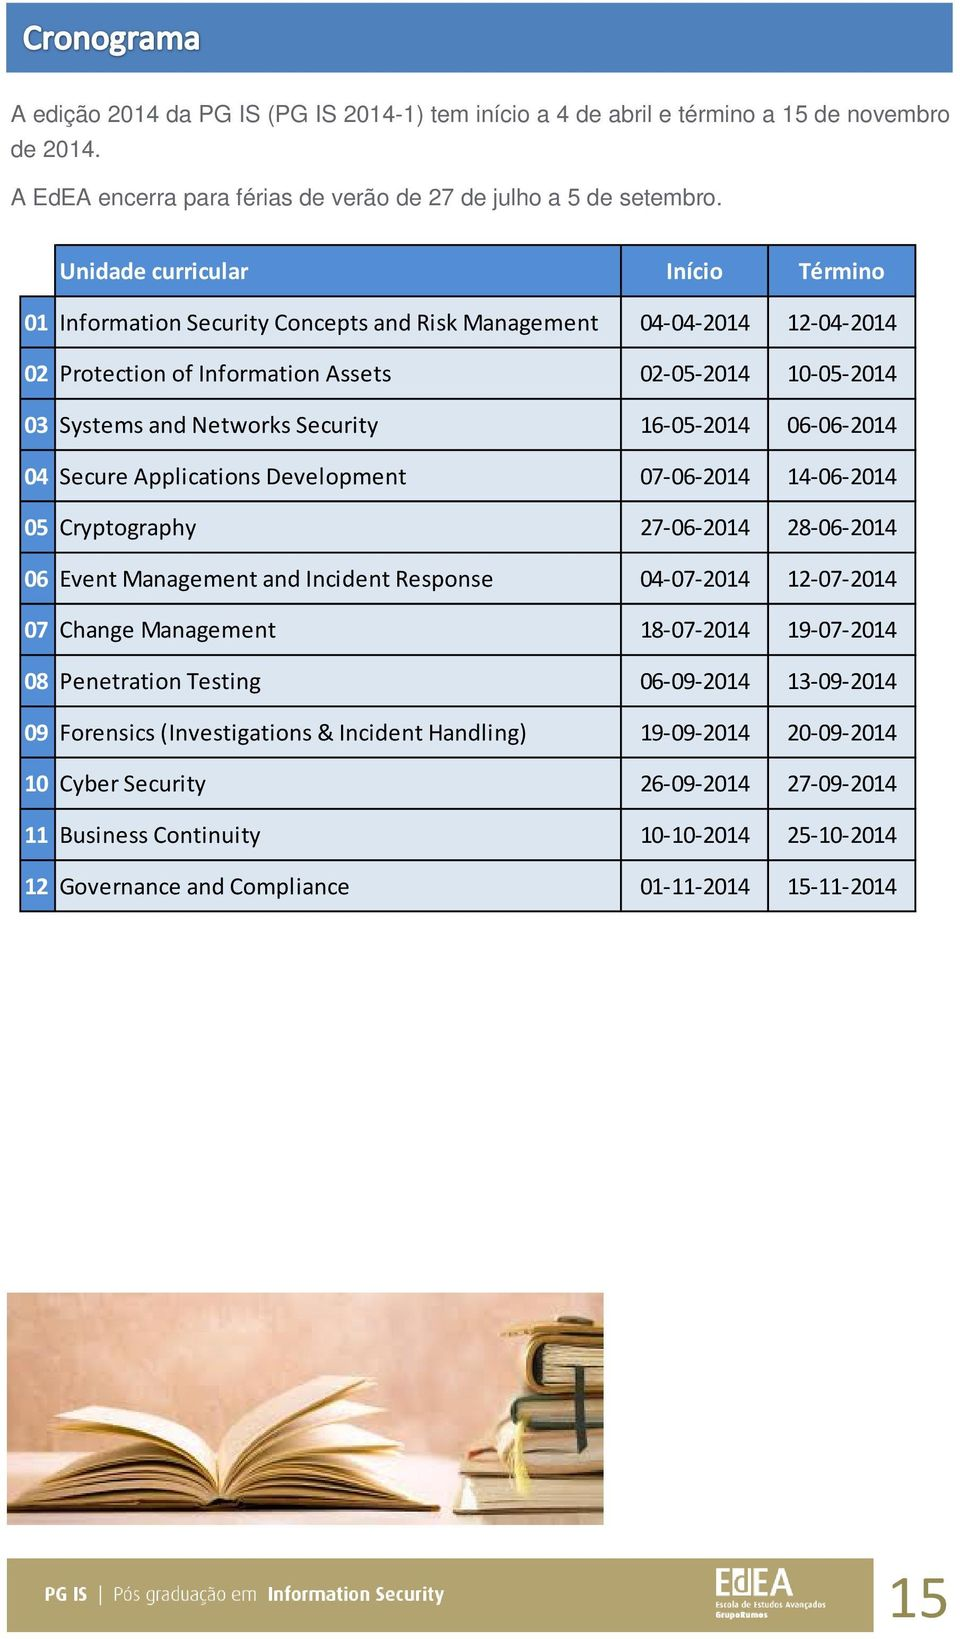 16-05-2014 06-06-2014 04 Secure Applications Development 07-06-2014 14-06-2014 05 Cryptography 27-06-2014 28-06-2014 06 Event Management and Incident Response 04-07-2014 12-07-2014 07 Change